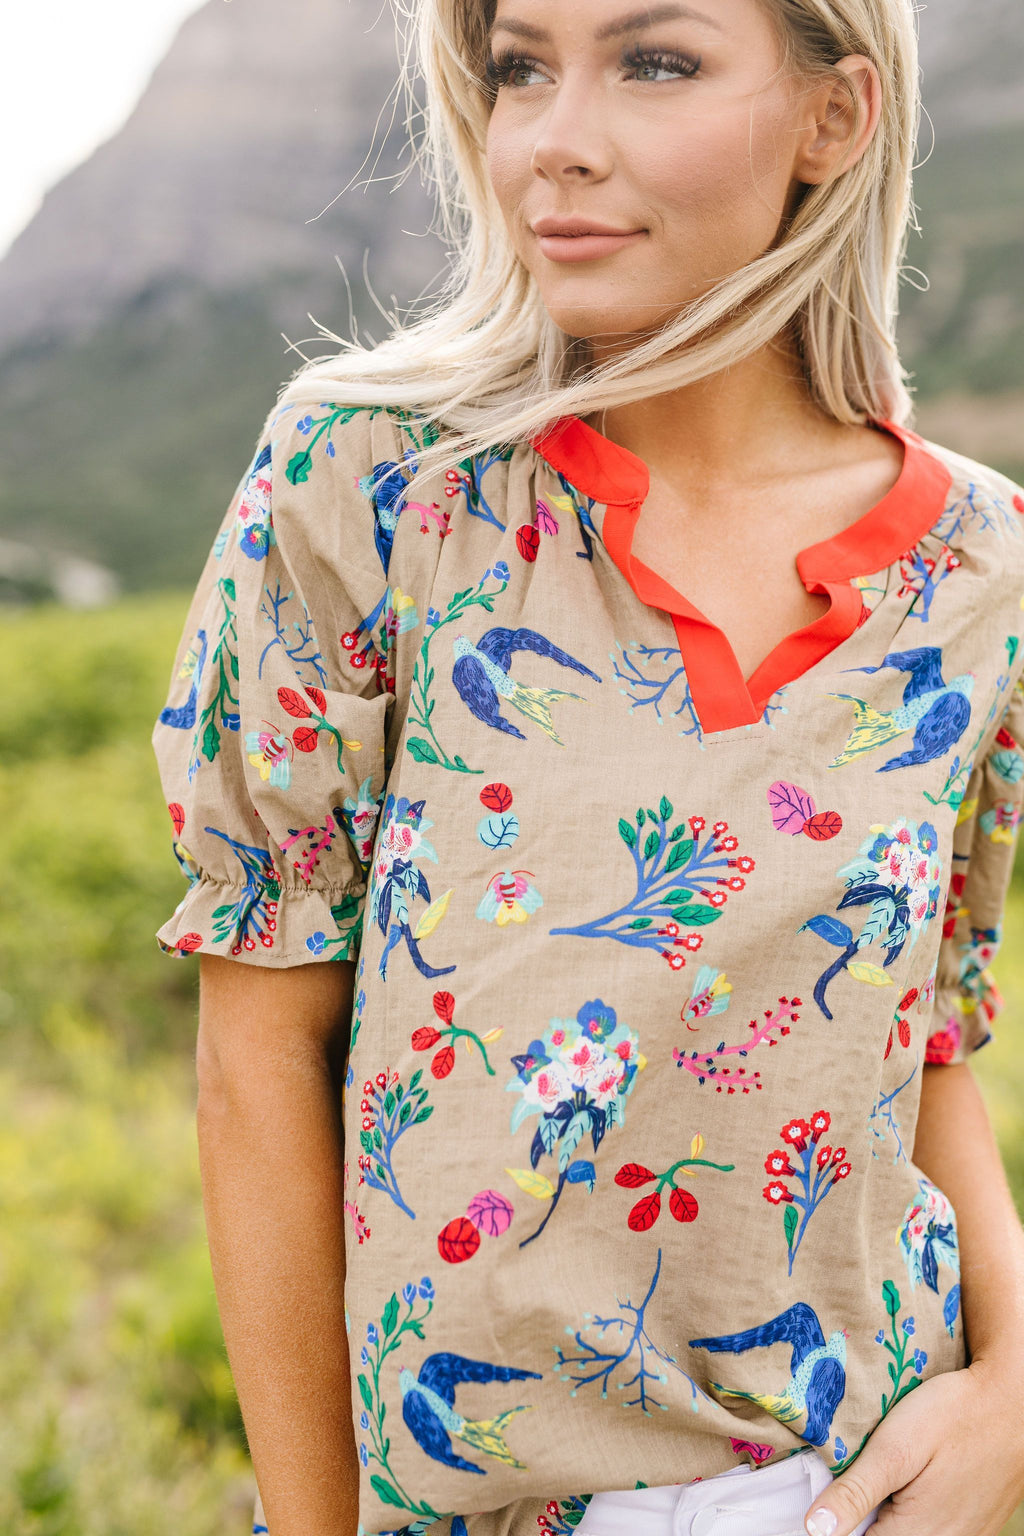 Bird Of Paradise Top-1XL, 2XL, 3XL, 7-17-2020, 7-9-2020, Bonus, Group A, Group B, Group C, Large, Medium, Plus, Small, Tops, XL, XS-Womens Artisan USA American Made Clothing Accessories